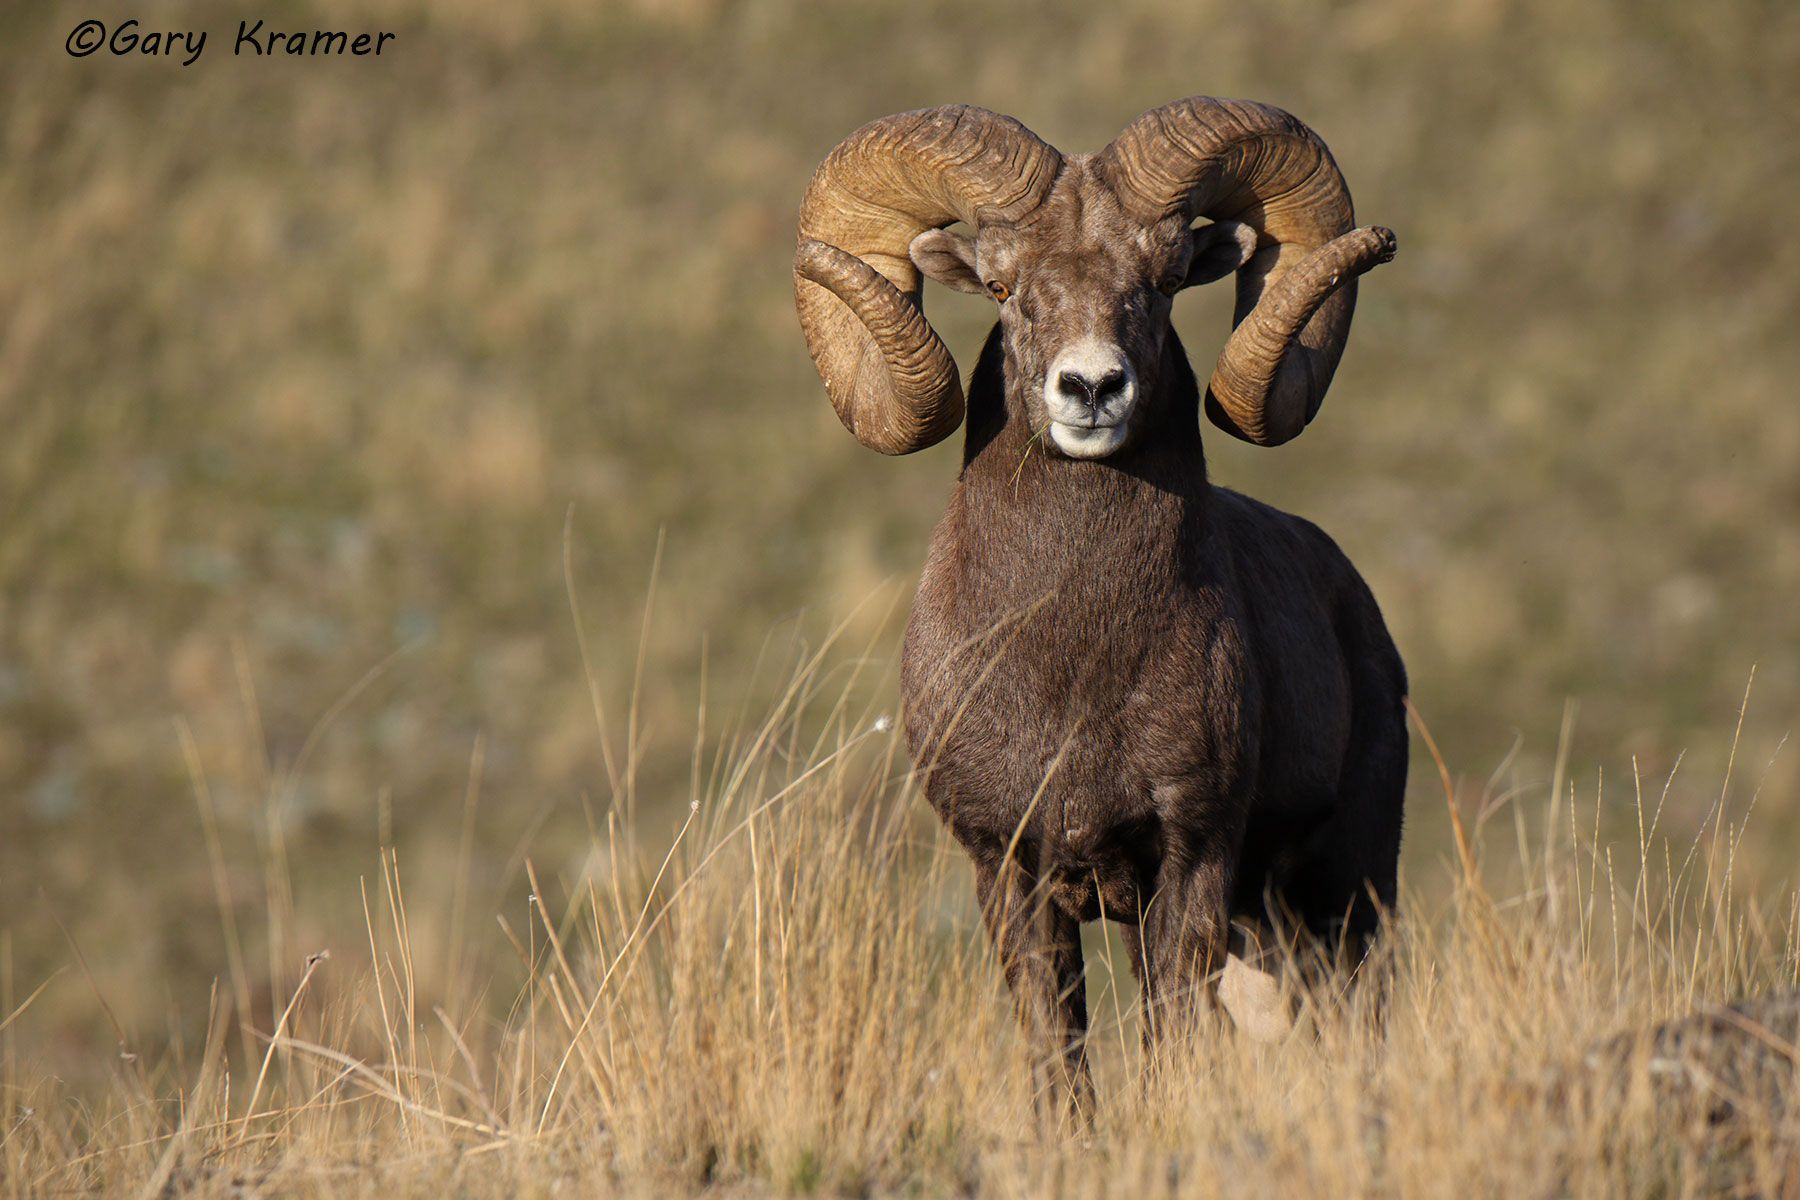 Rocky Mountain Bighorn (Ovis canadensis canadensis) - NMSBr#1615d